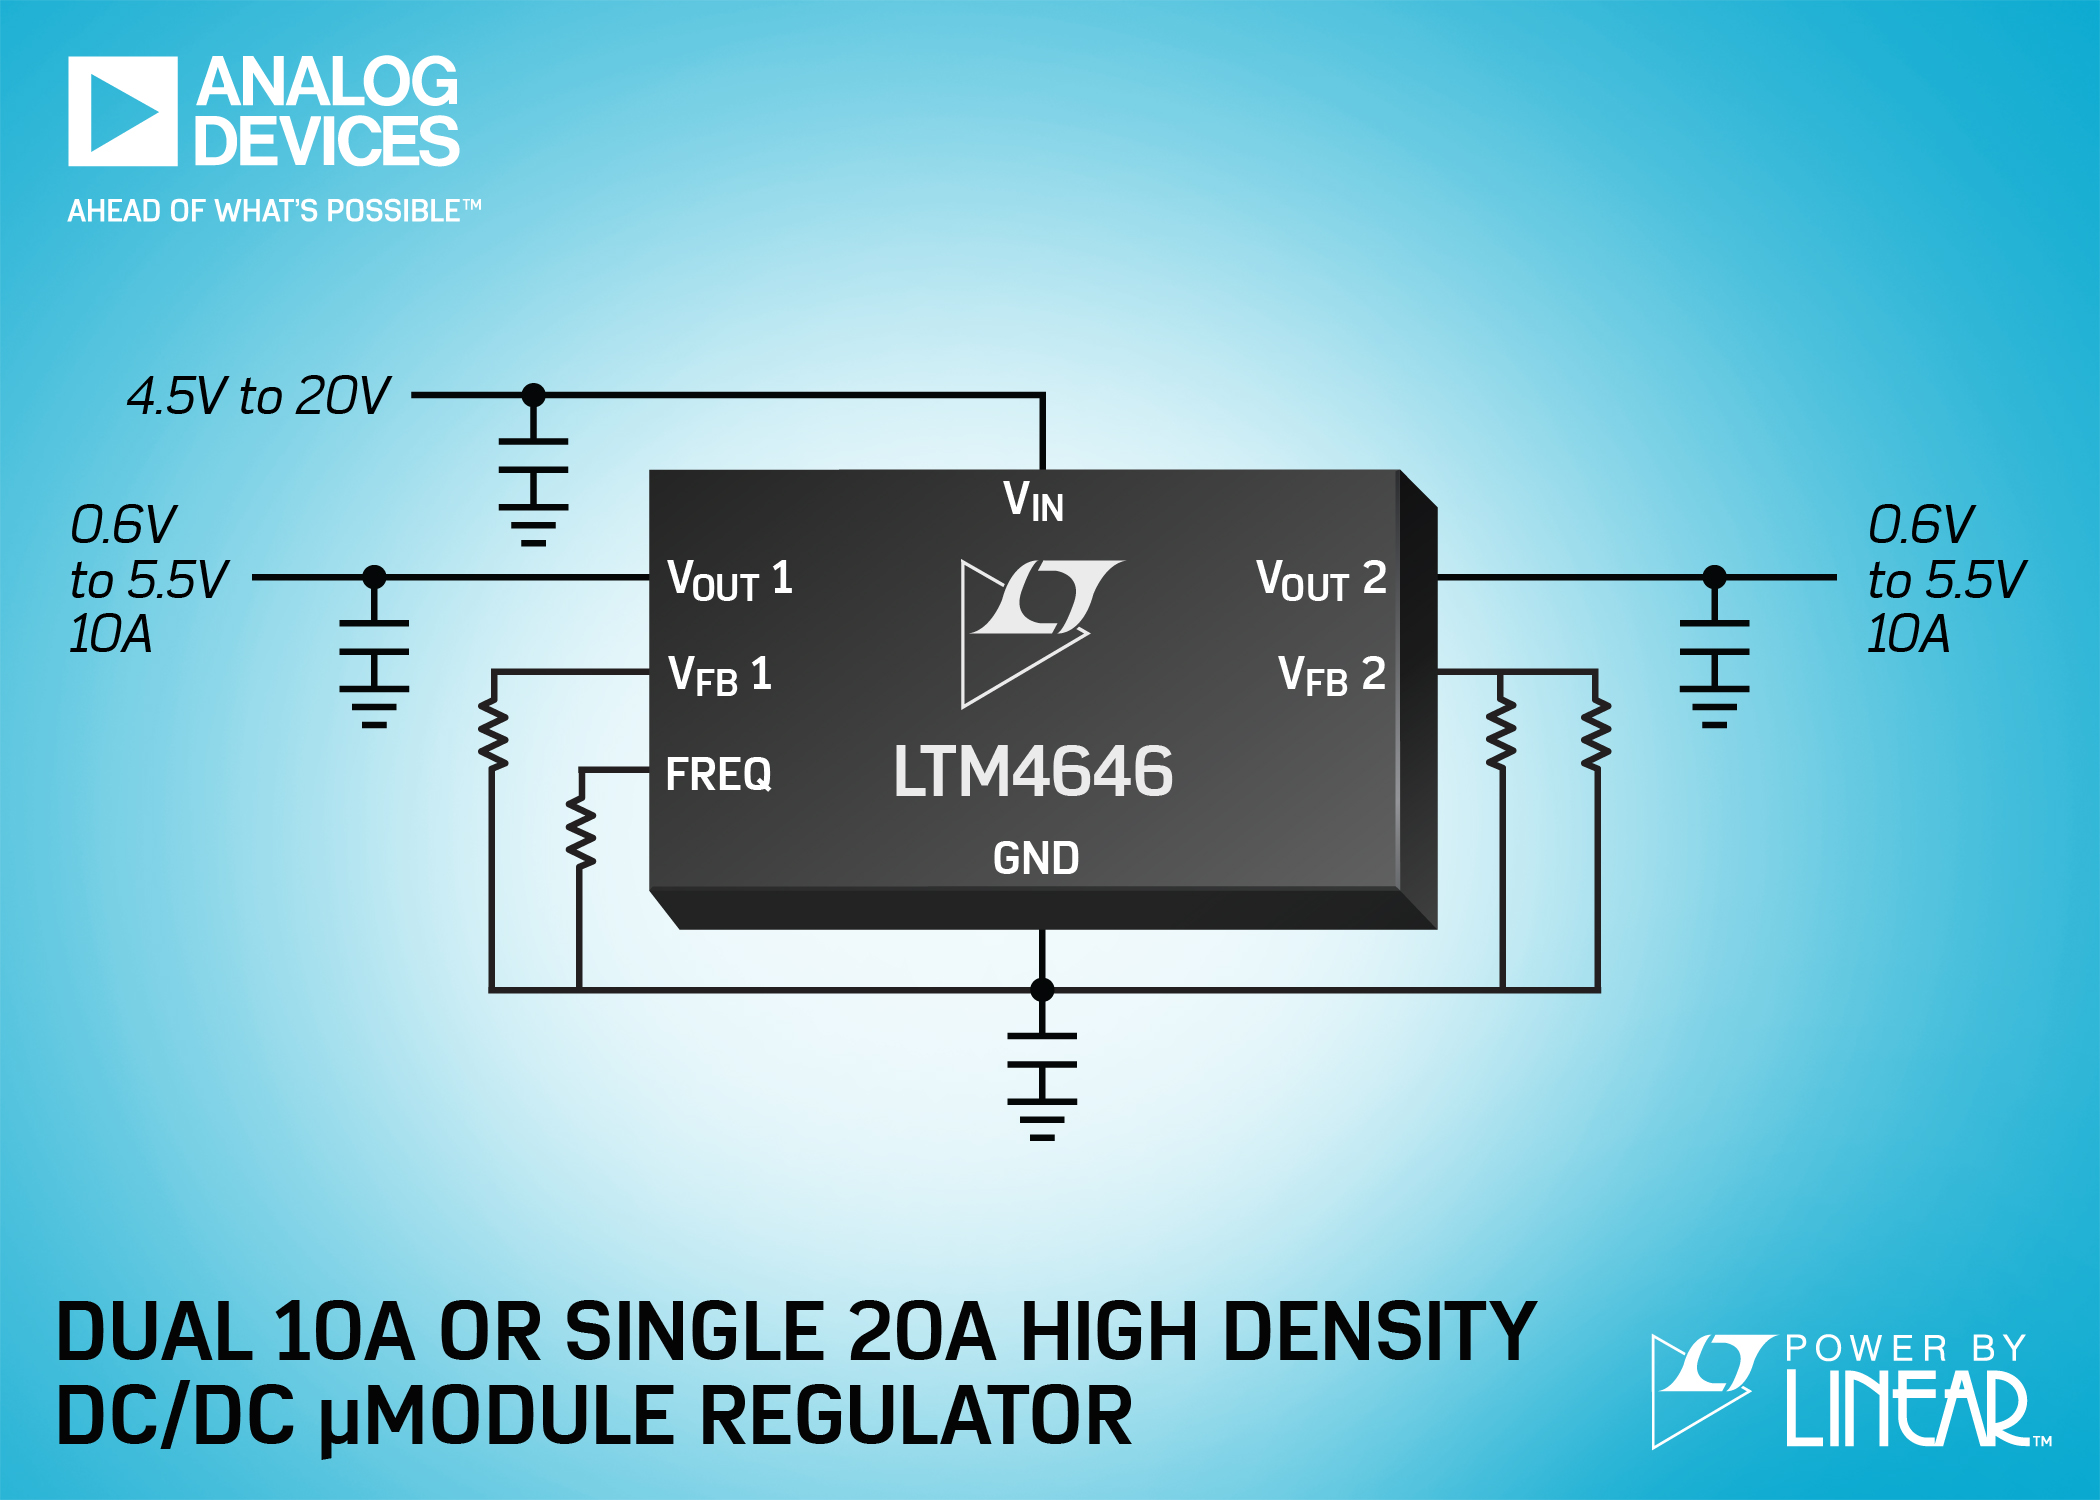 Compact Dual 10A or Single 20A �Module Regulator Powers FPGAs, GPUs, ASICs, & System Power